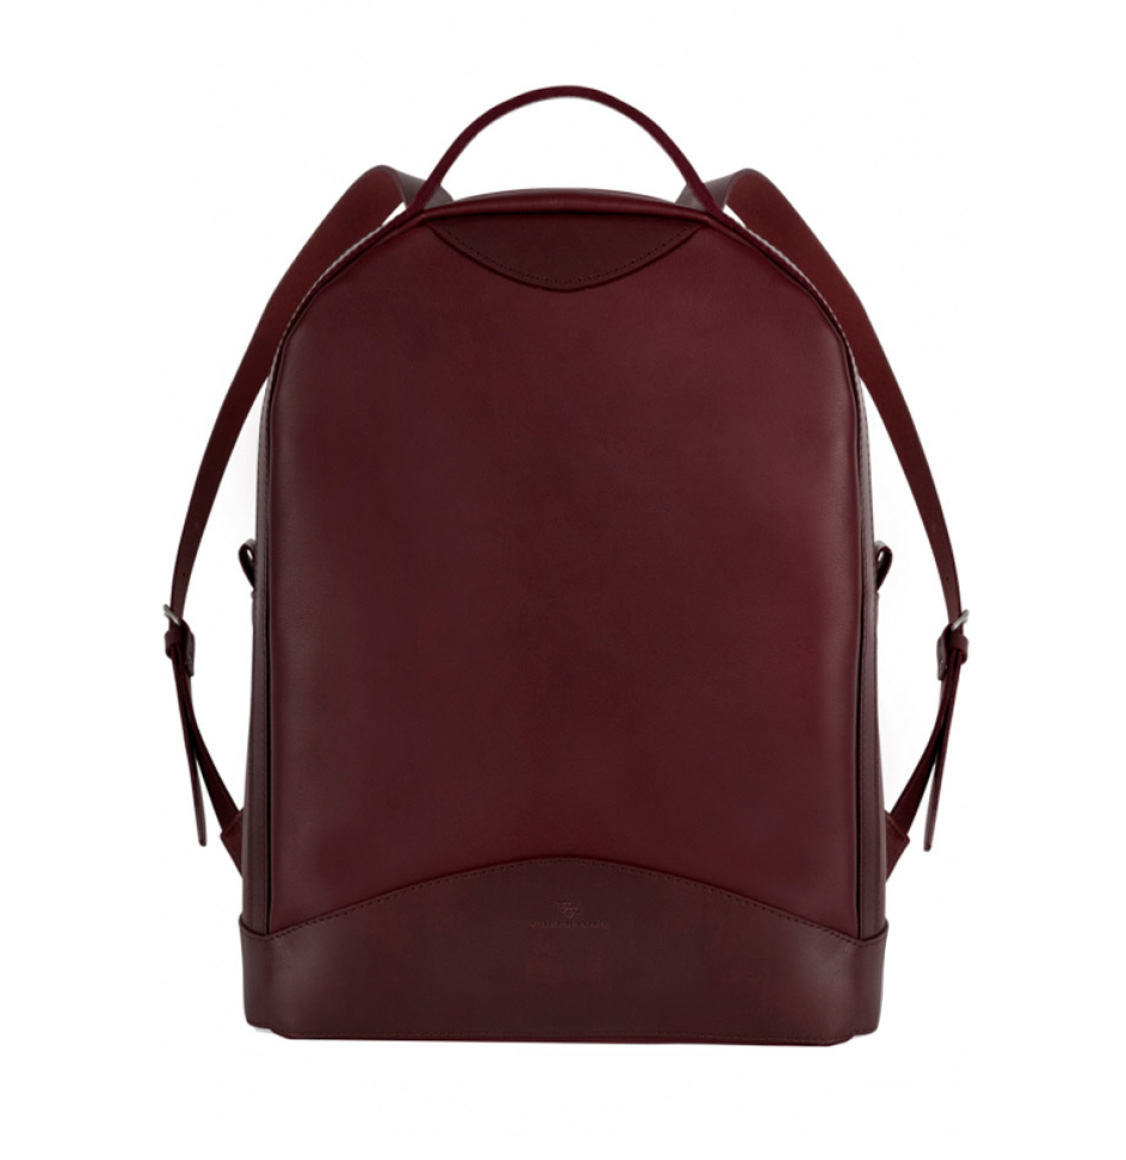 Atelier De L' Armee Voyager Pack Leather Bordeaux